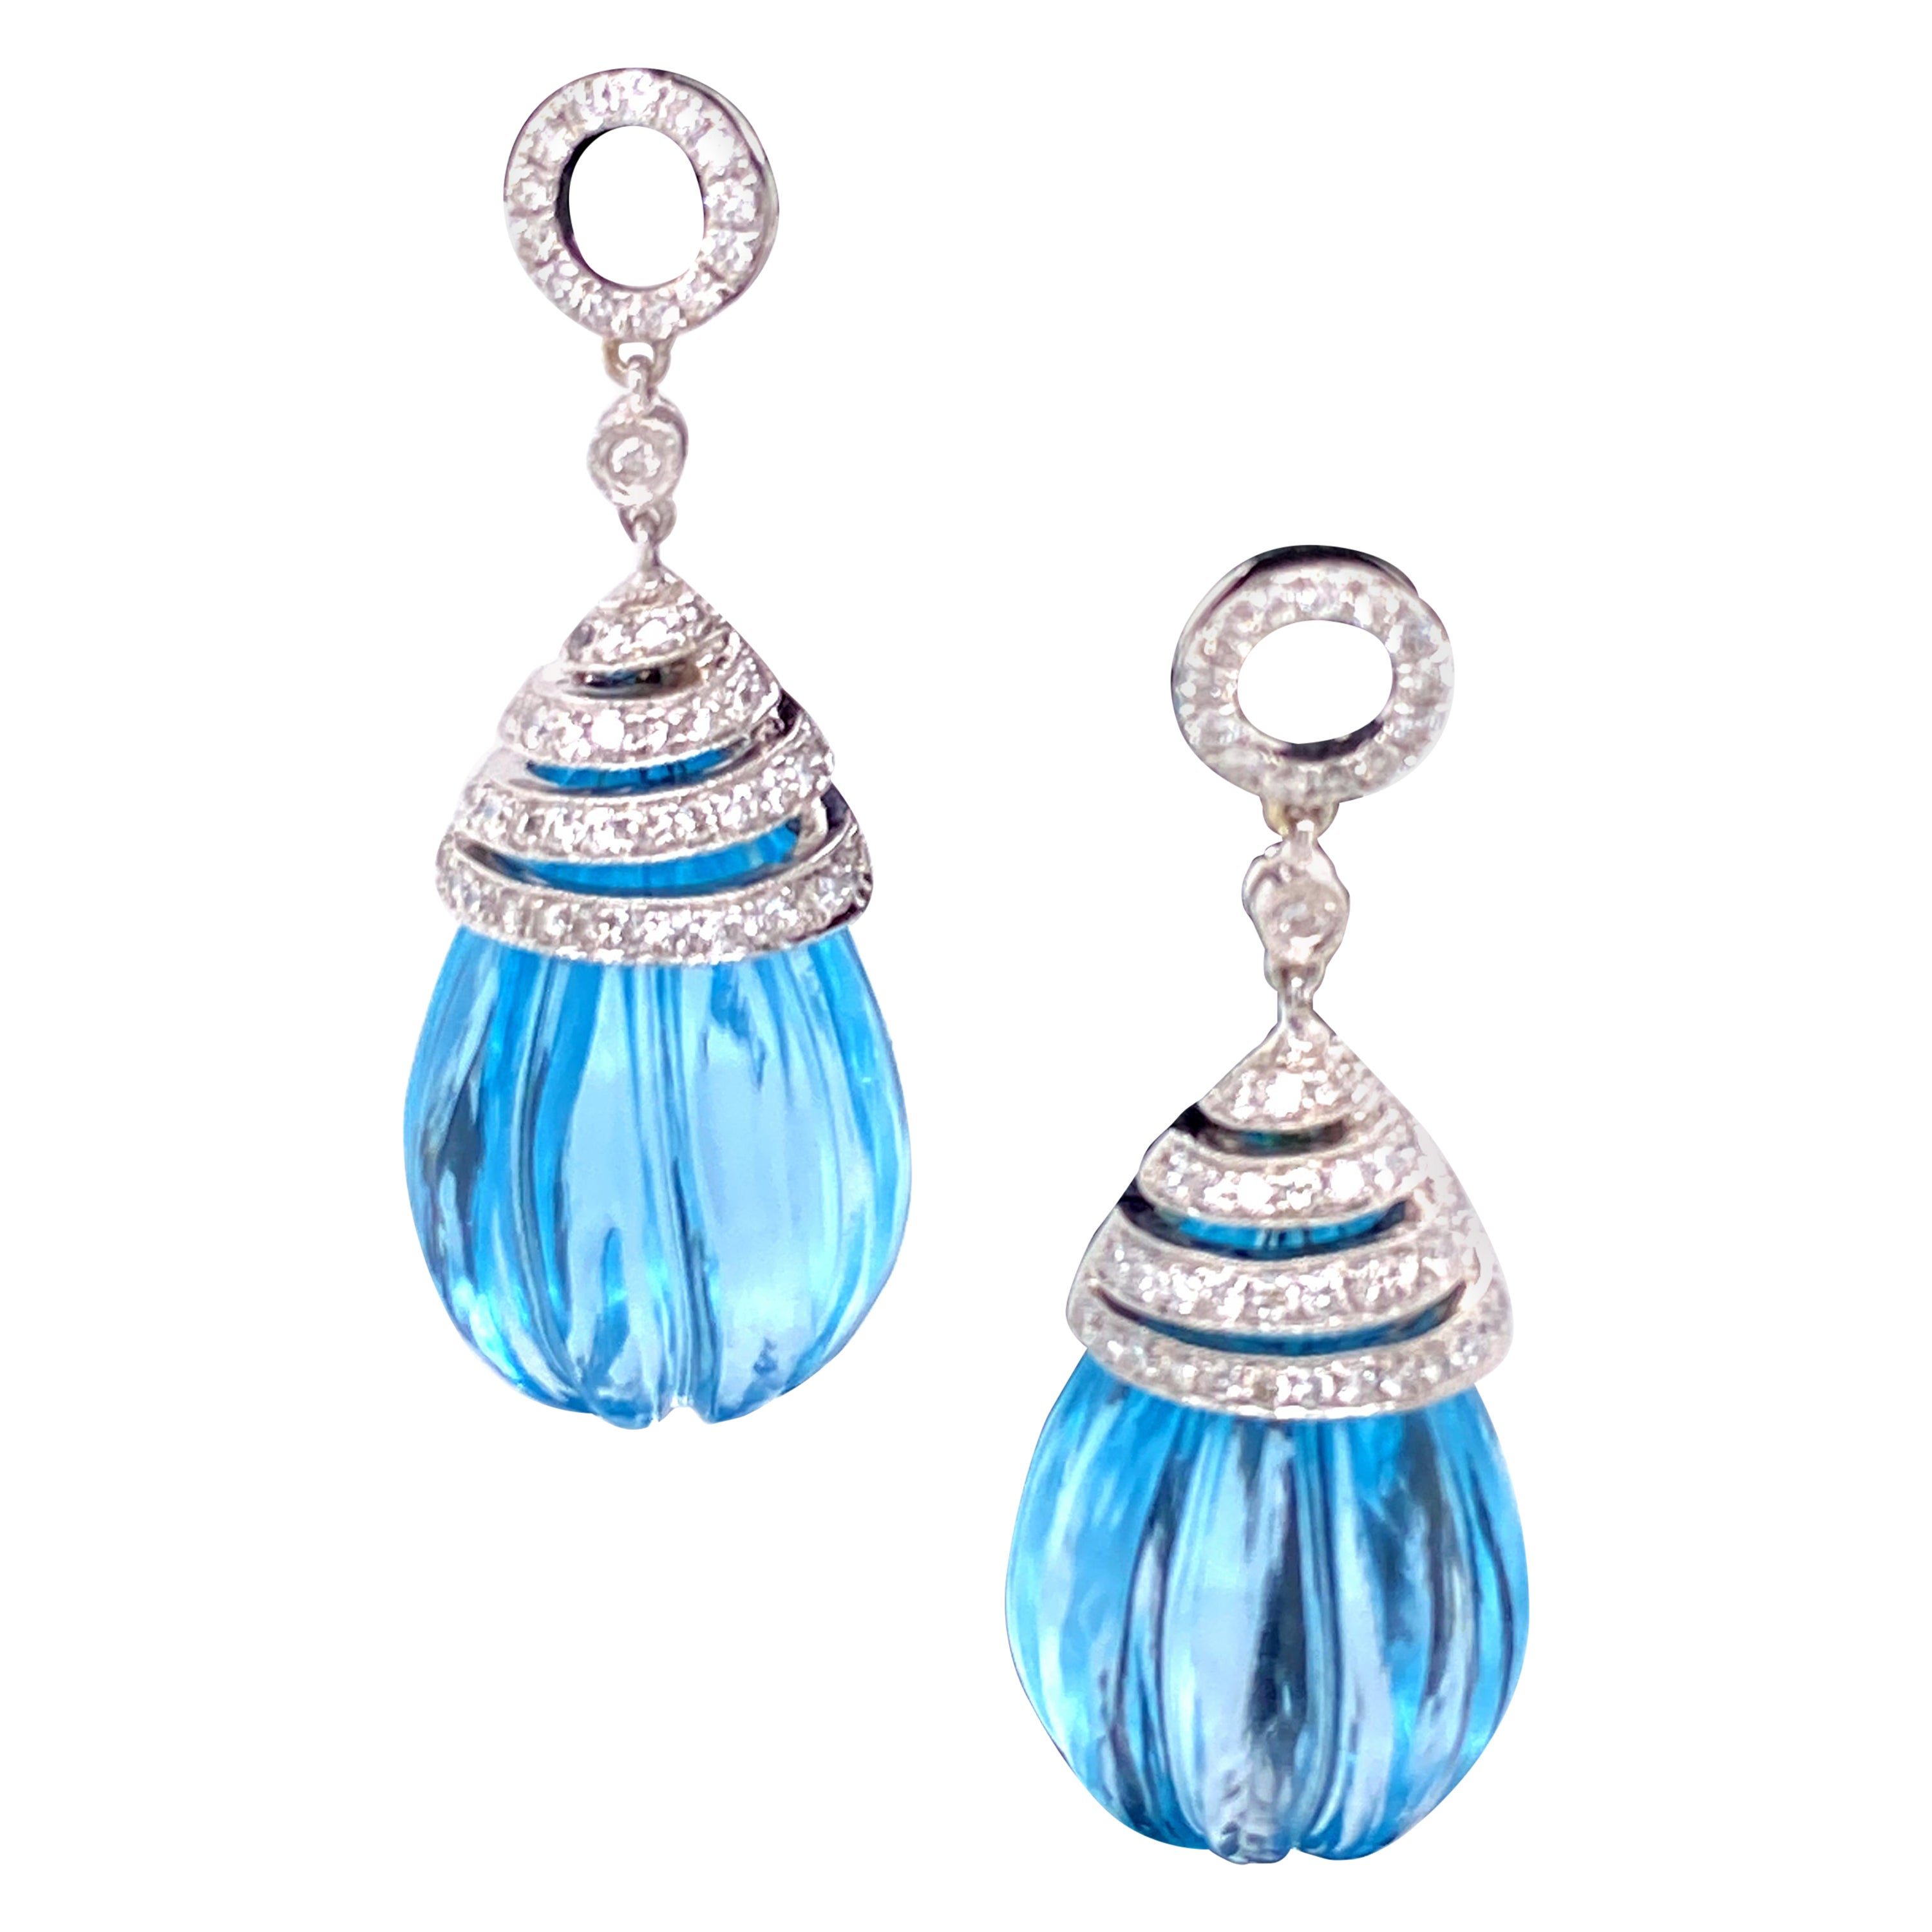 57.82 Carat Carved Blue Topaz Drops and White Diamond Gold Earrings